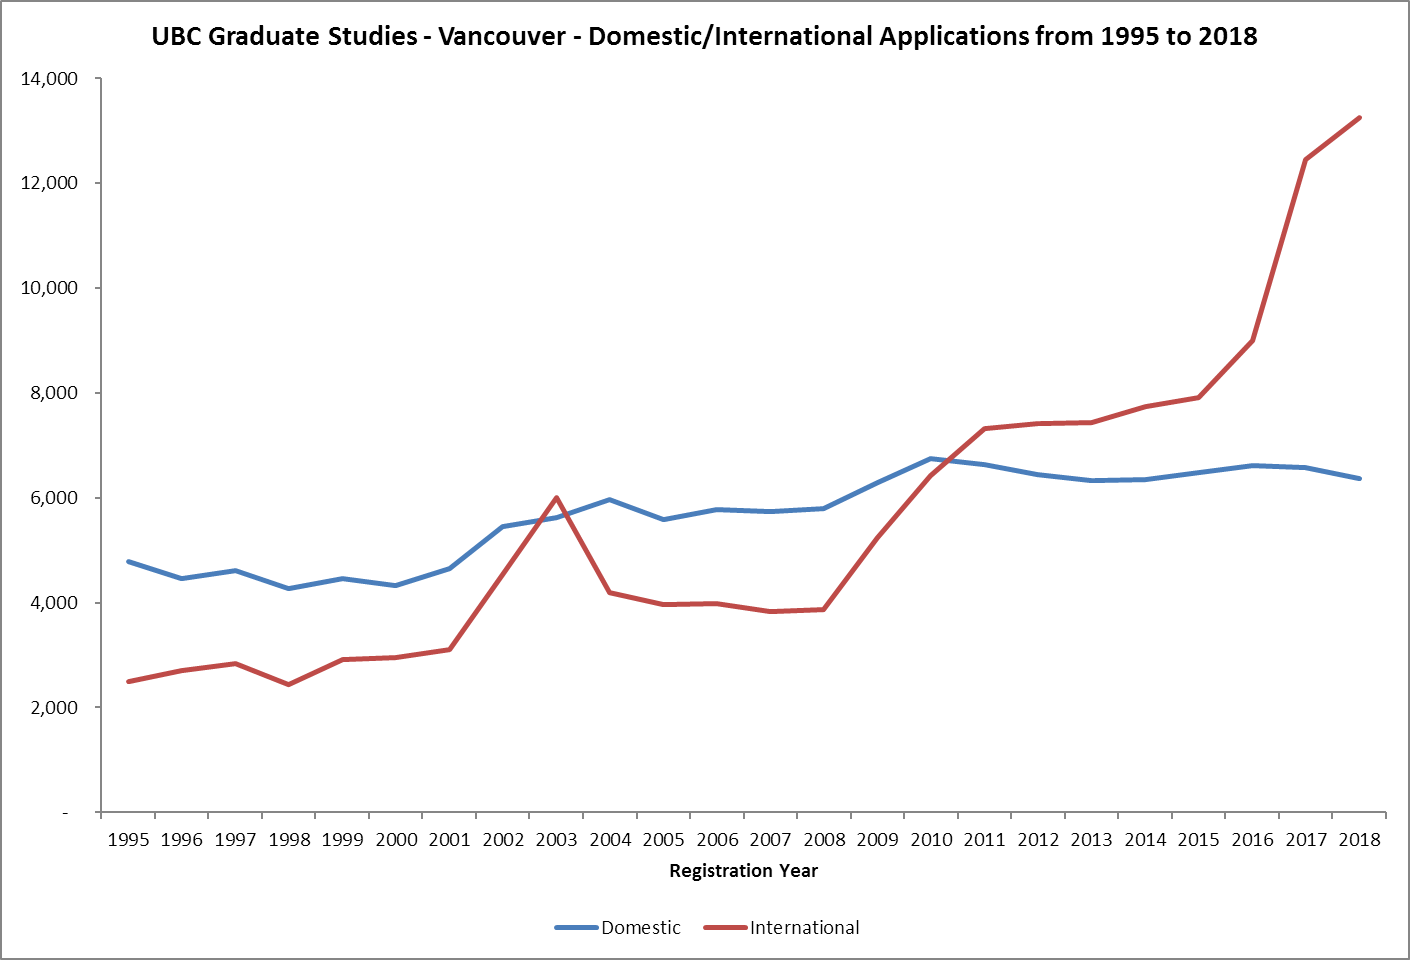 UBC Graduate Studies - Masters and Doctoral International Application Numbers from 1995 to 2018